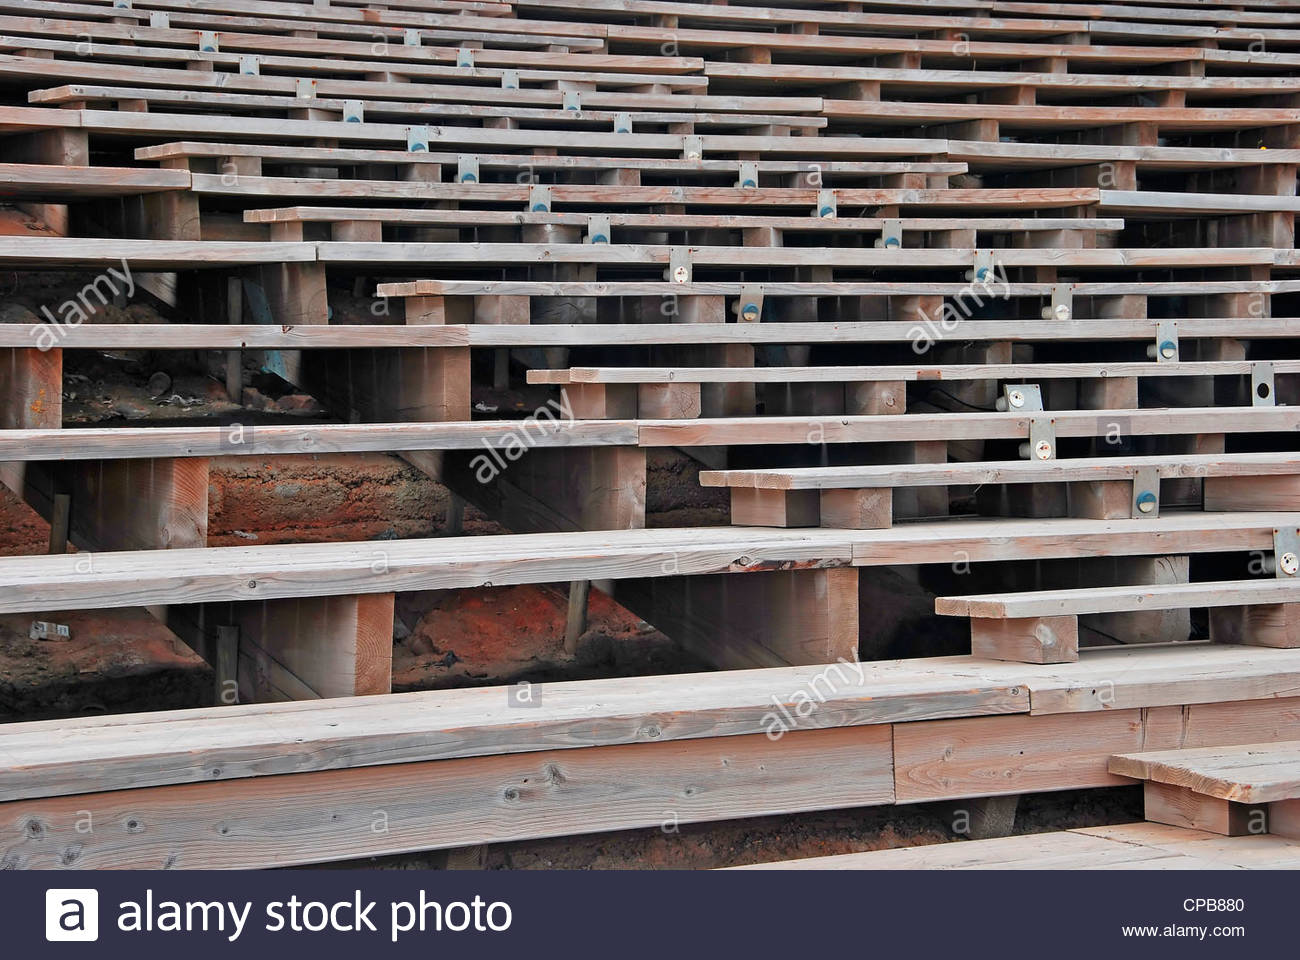 Rows of Wooden seats for an outdoors spectacle - Stock Image